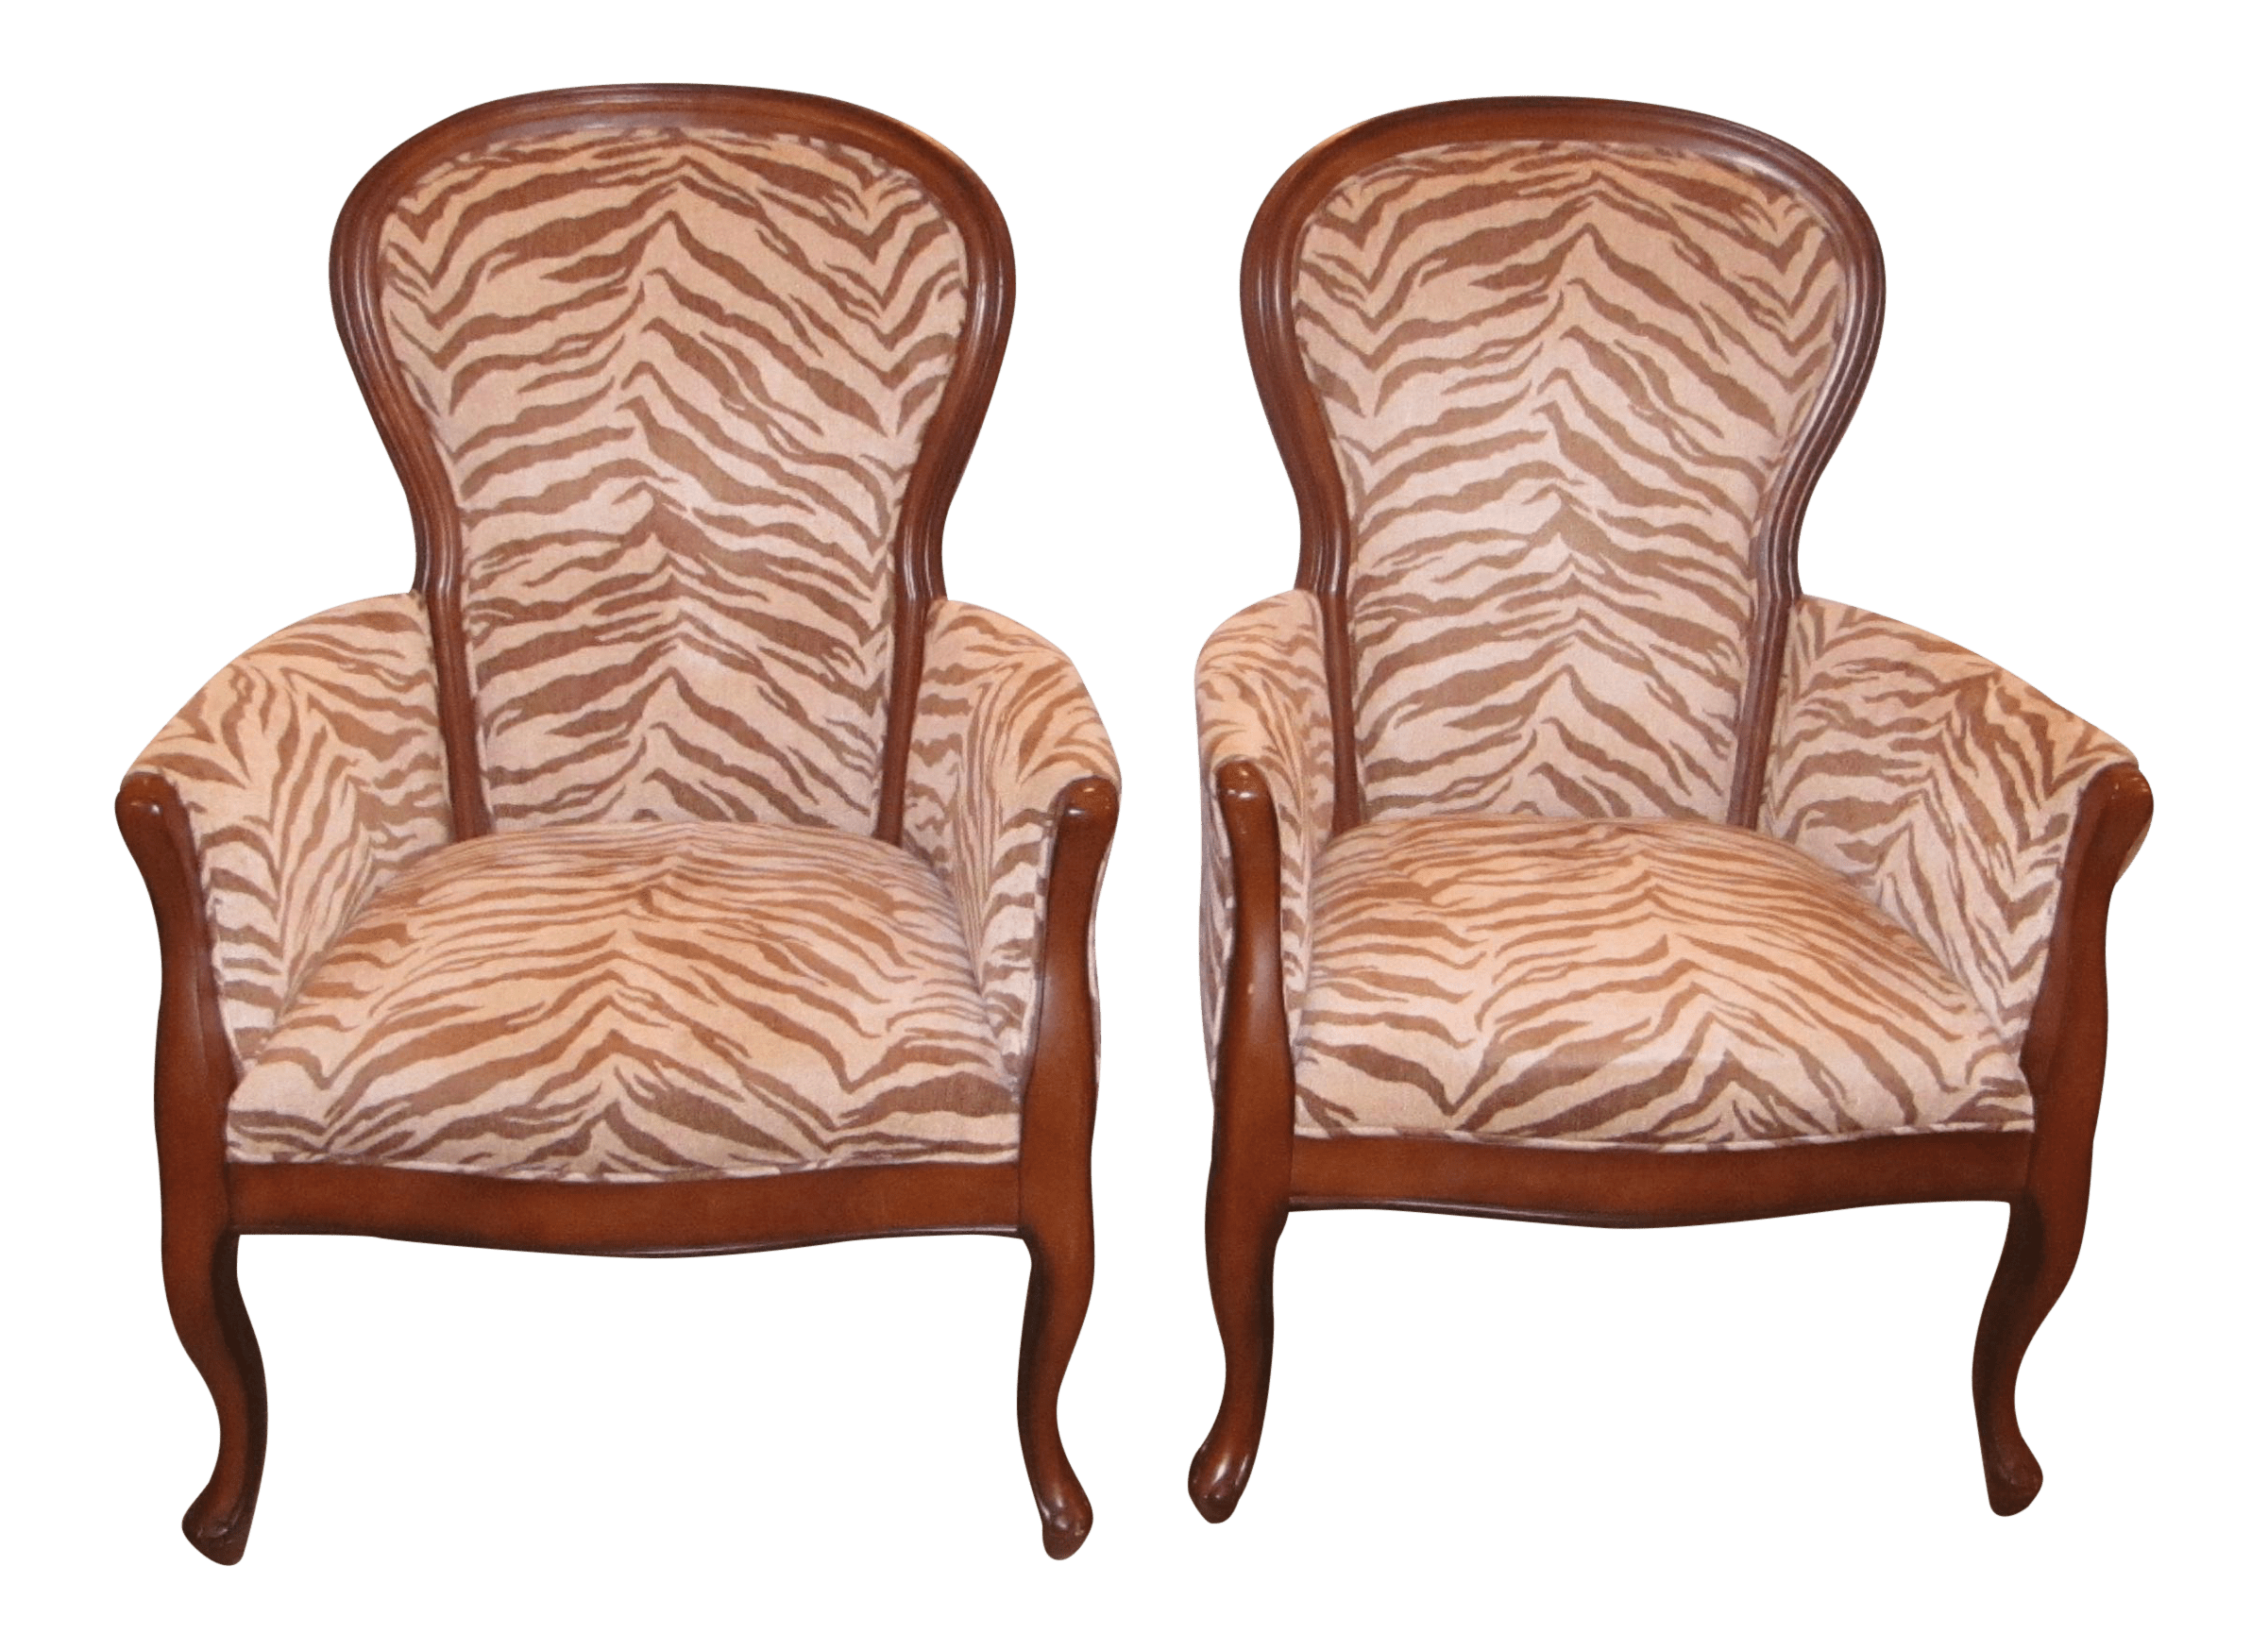 Animal Print Dining Chairs Upholstered Zebra Print Accent Chairs A Chair Chairish